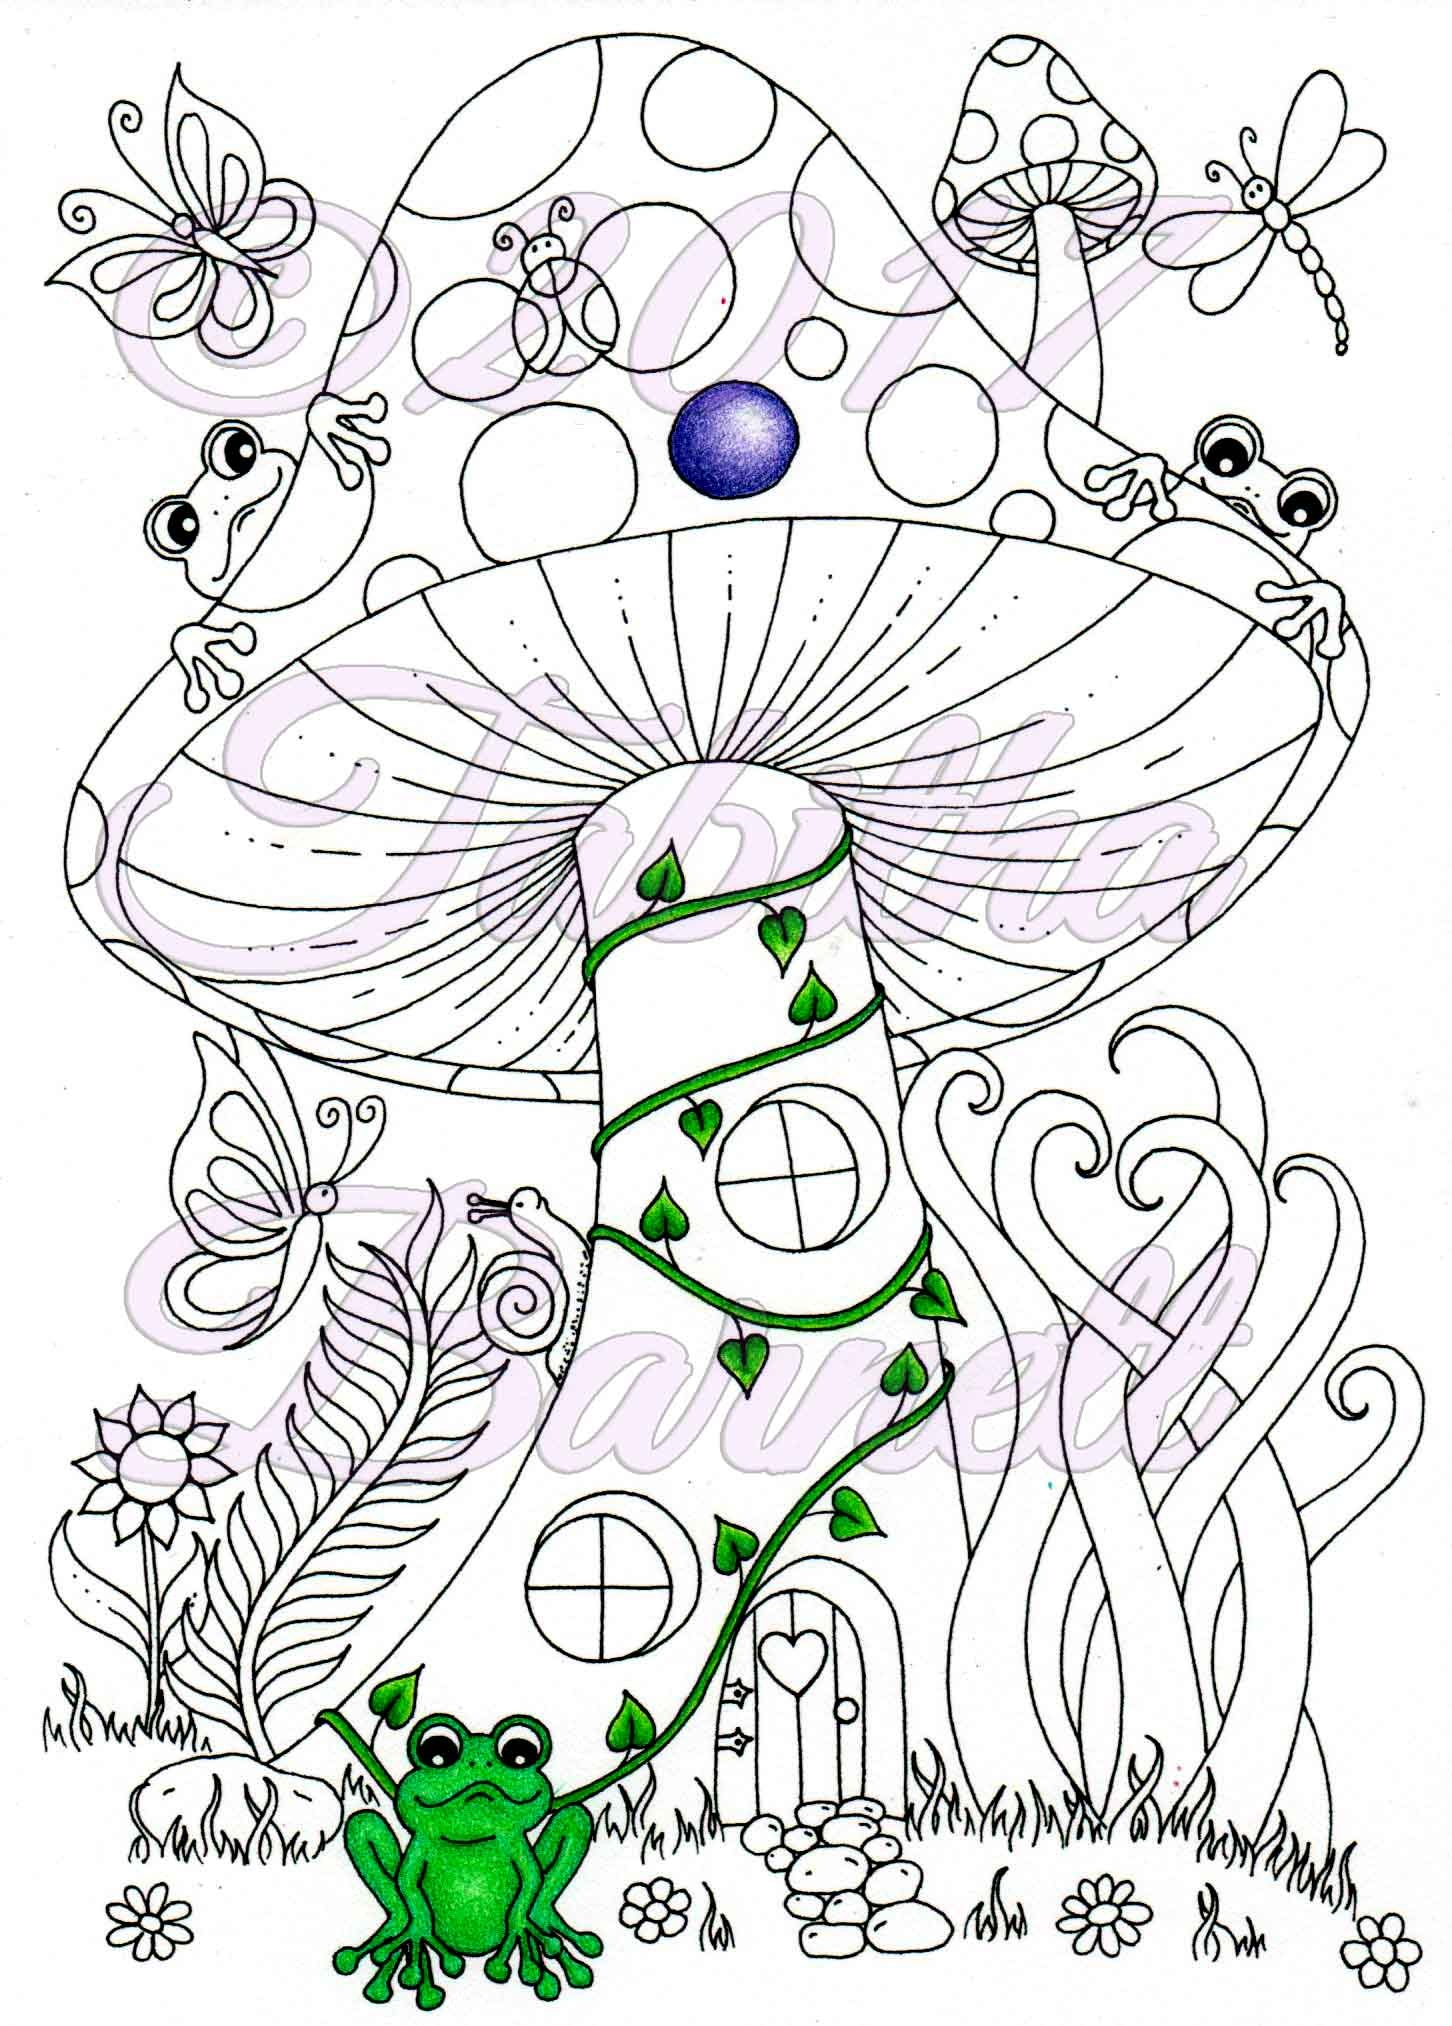 Fiary Mushroom House Adult Coloring Page JPG